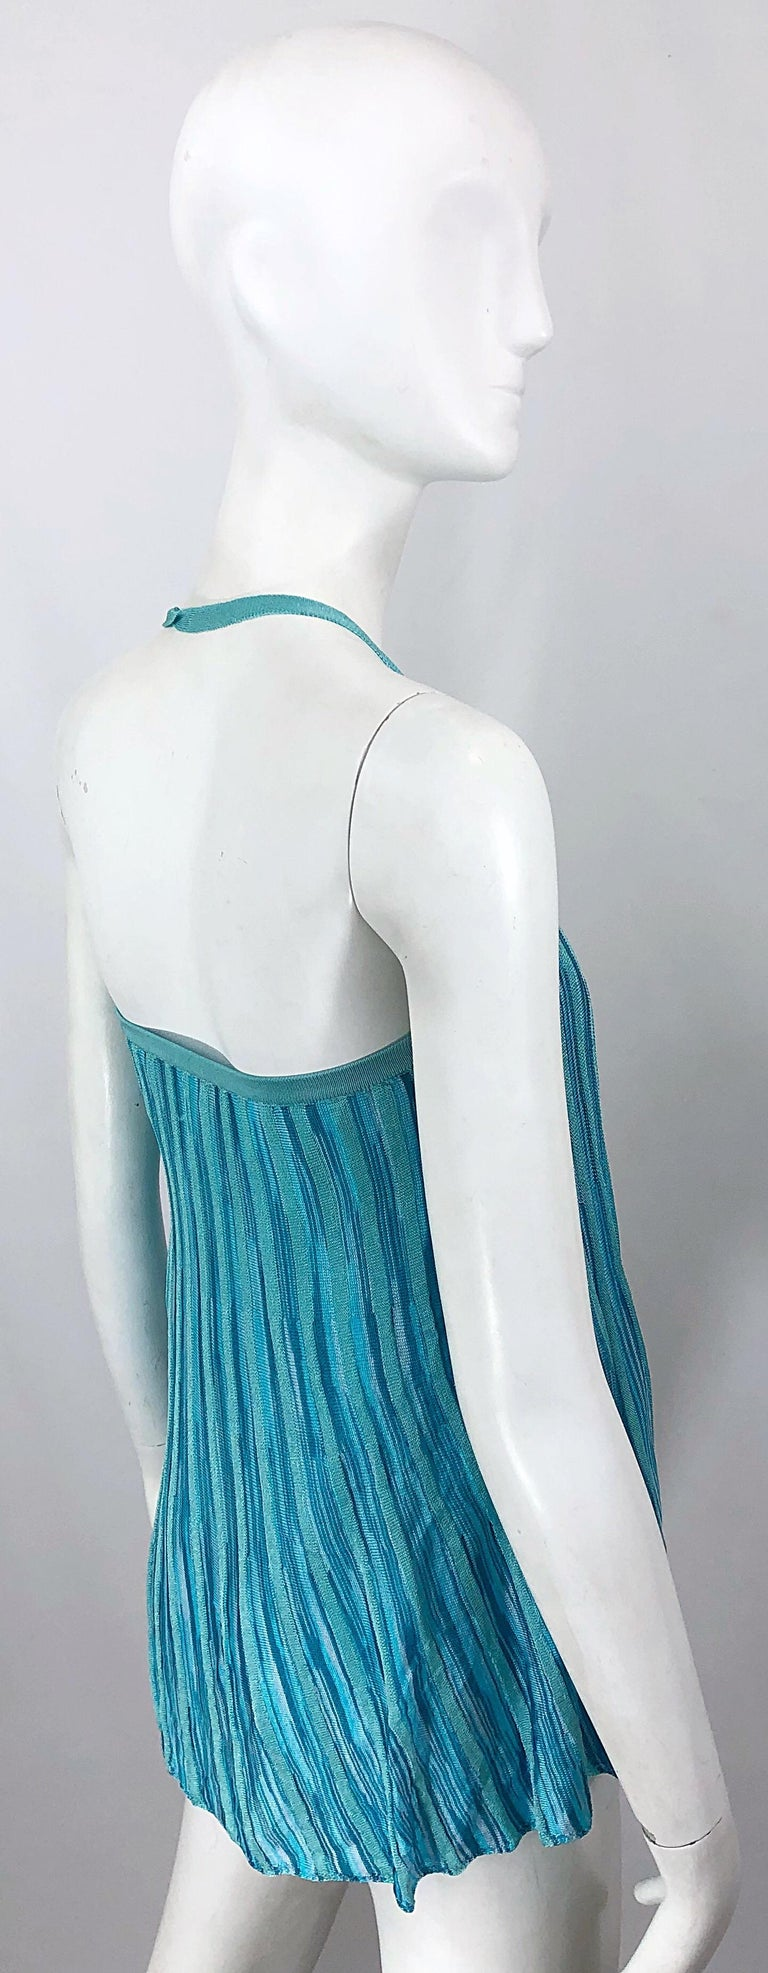 Vintage Missoni 1990s Turquoise Teal Blue Knit Vintage 90s Halter Top OR Skirt In Excellent Condition For Sale In Chicago, IL